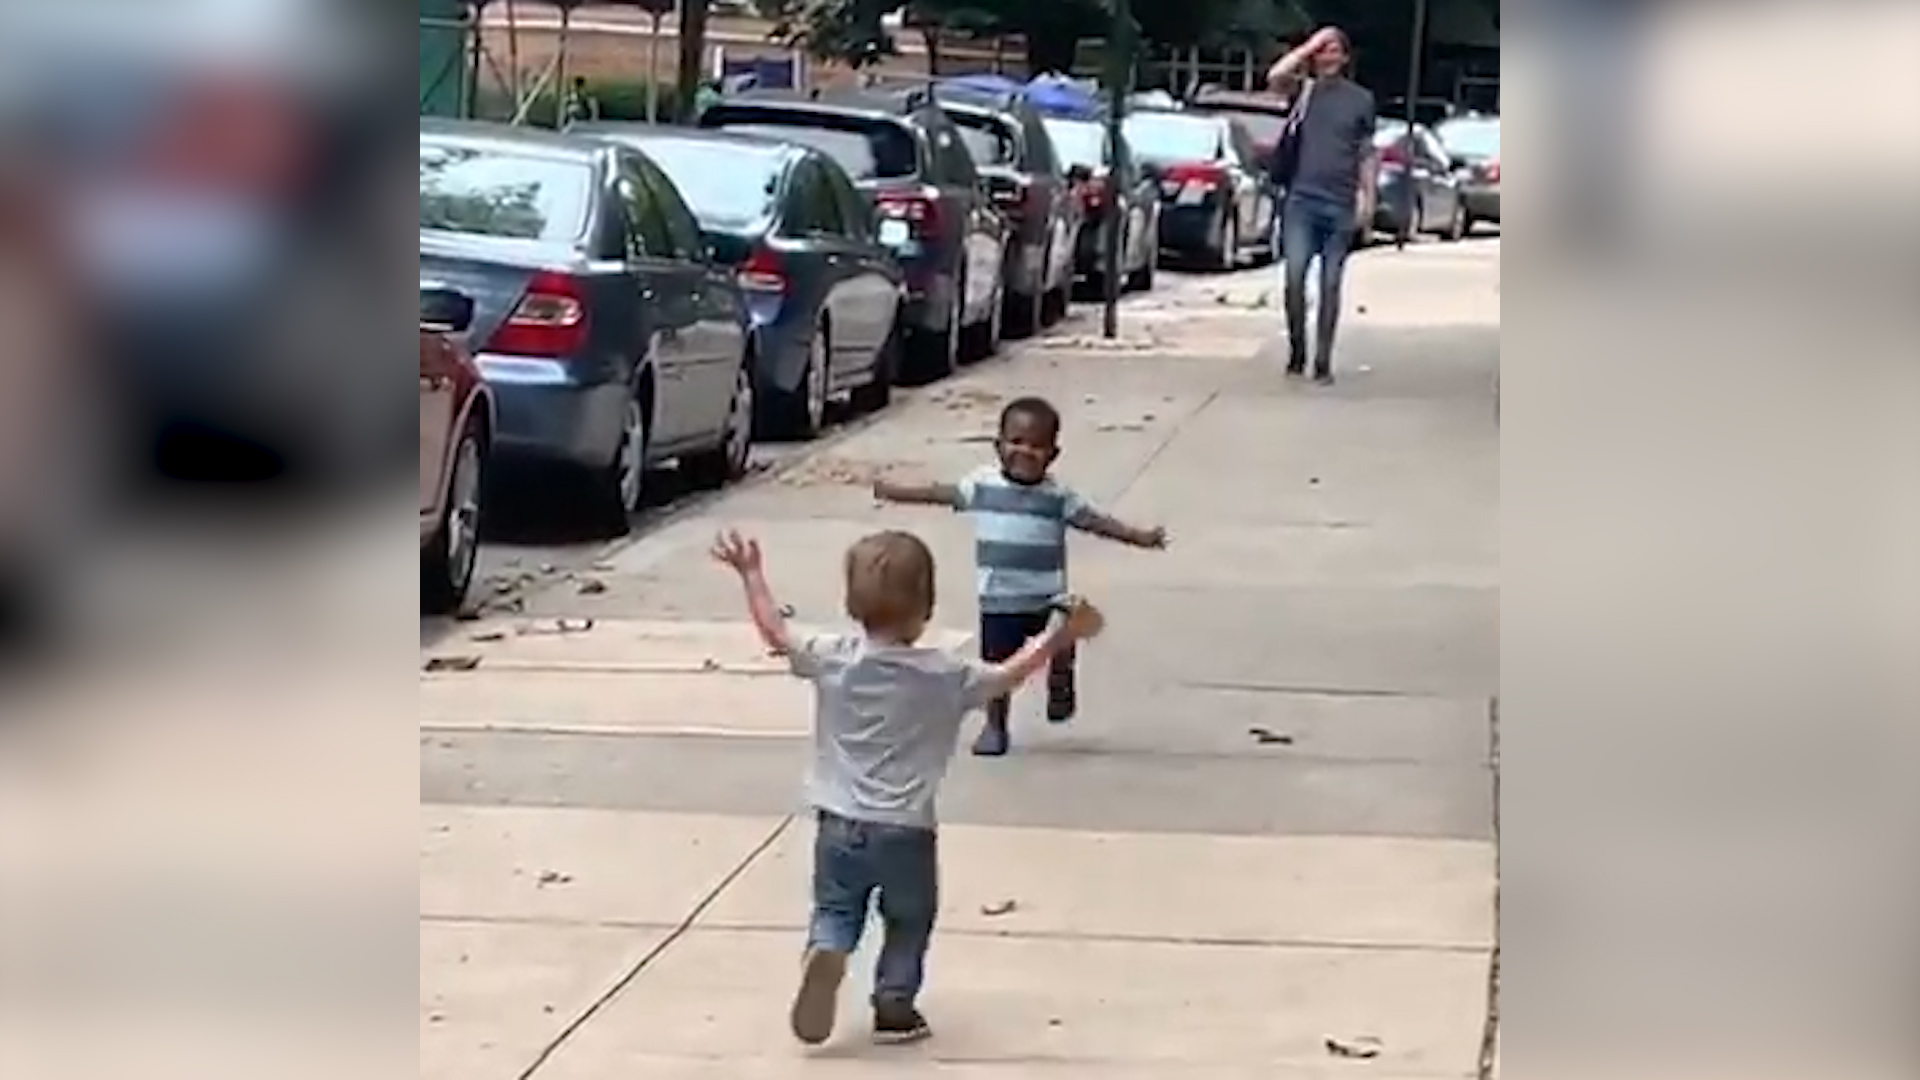 a black and a white kid running towards each other with open arms goes viral